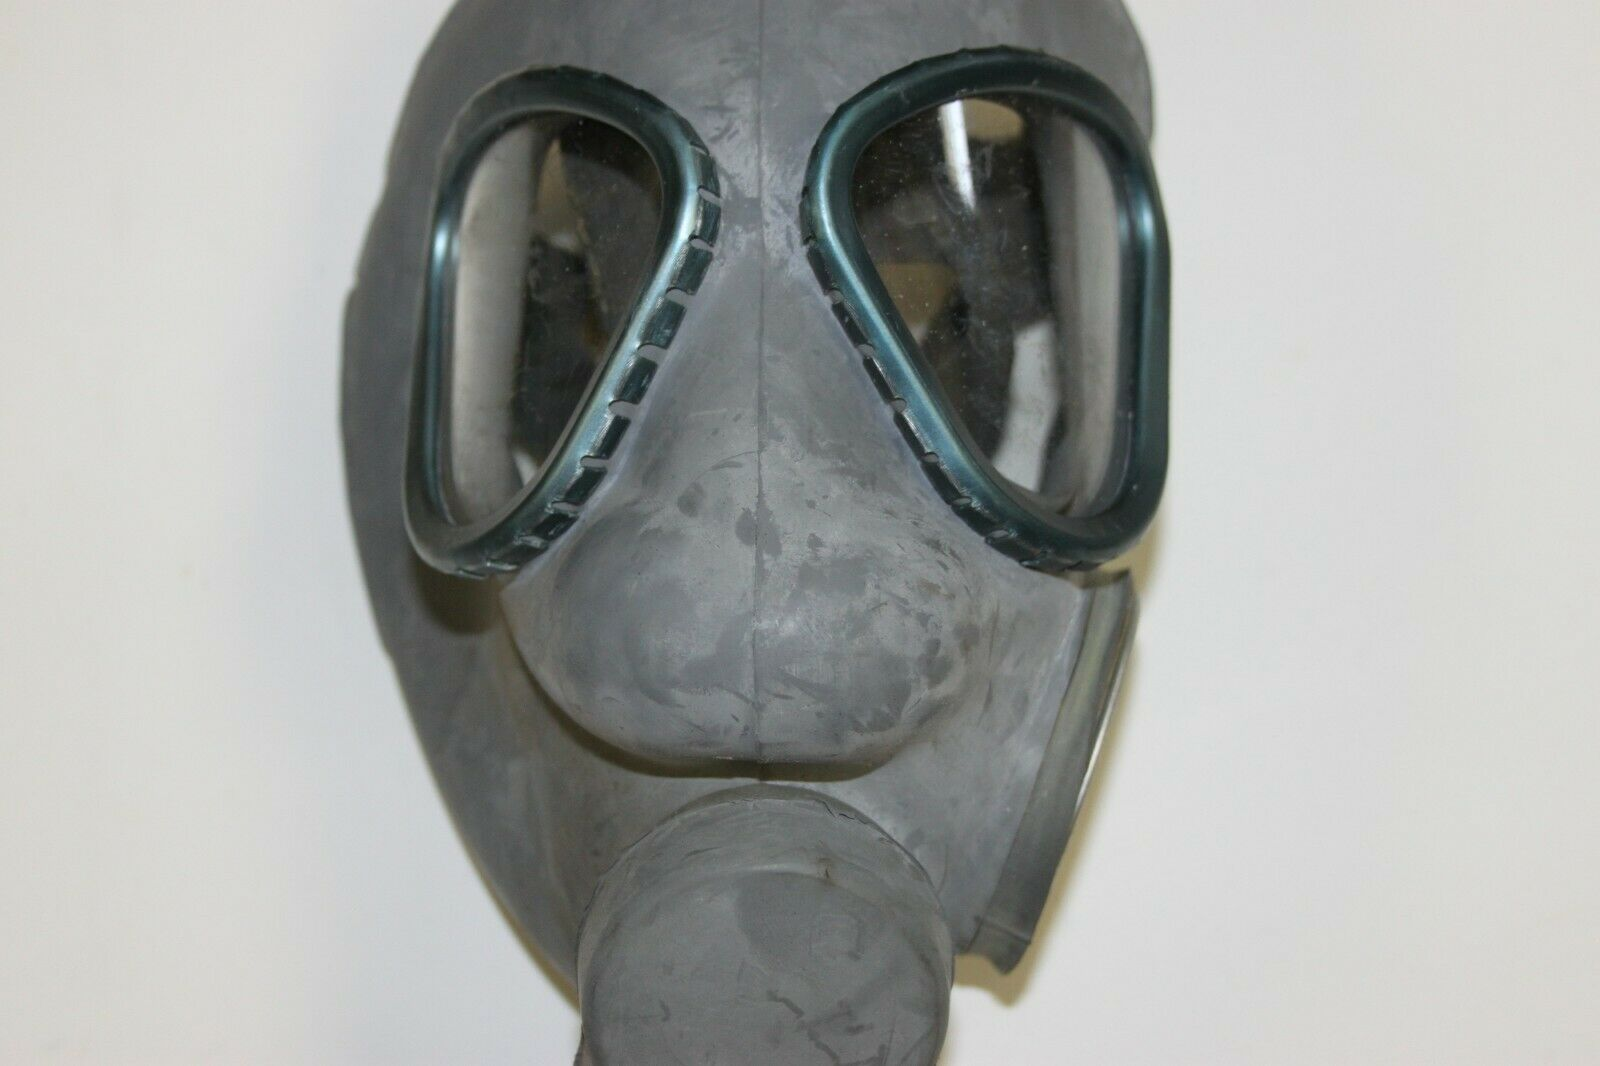 USED Finnish Military M61 Gas Mask NBC w/60MM Filter SUOD 61